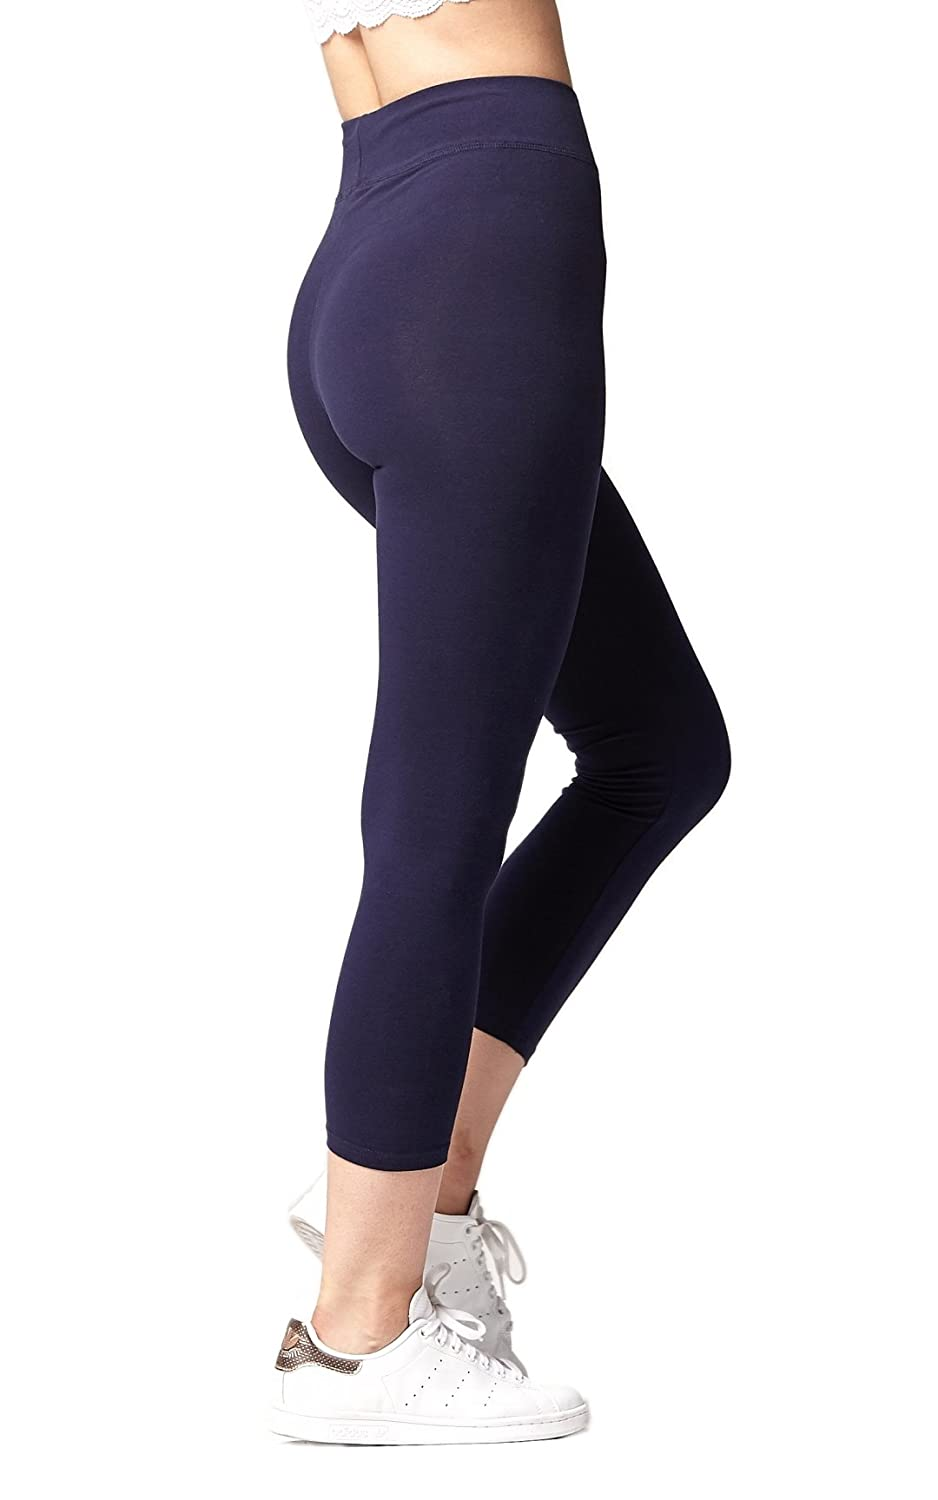 Premium Soft Cotton Spandex Jersey Leggings - High Yoga Waistband - Regular Plus Size - Capri and Full Length